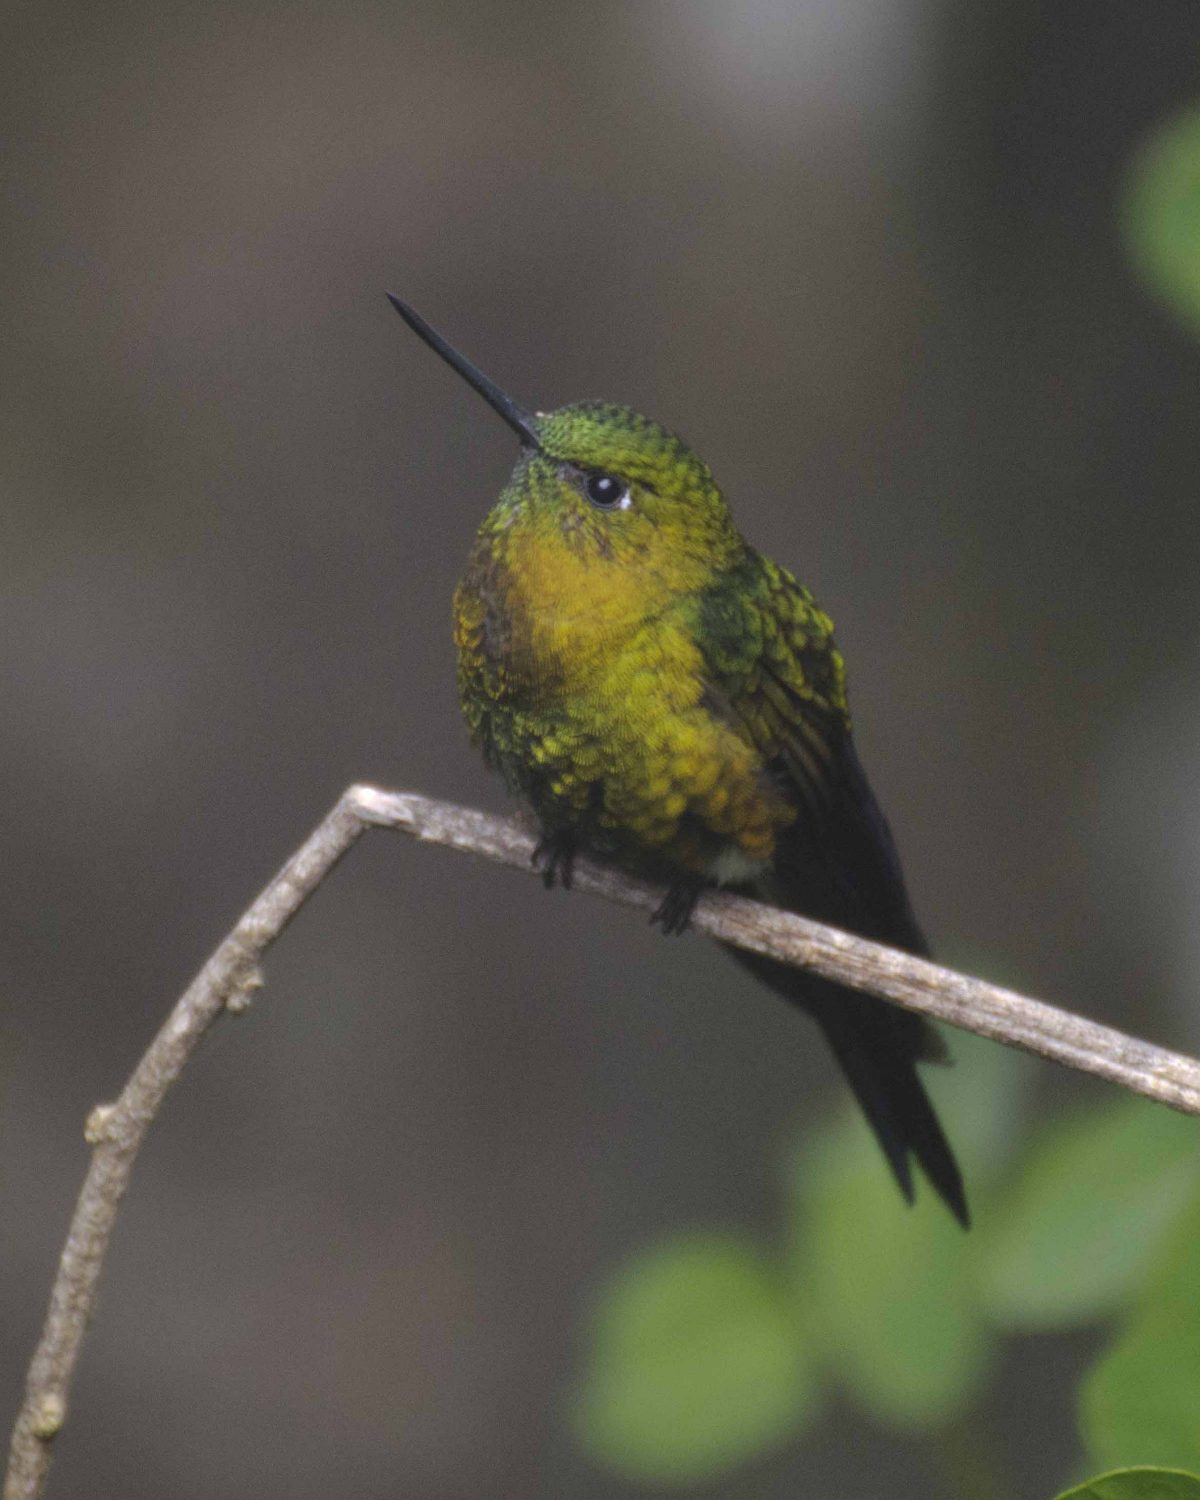 The Golden-breasted Puffleg can look very small when perched   ©Angela Drake